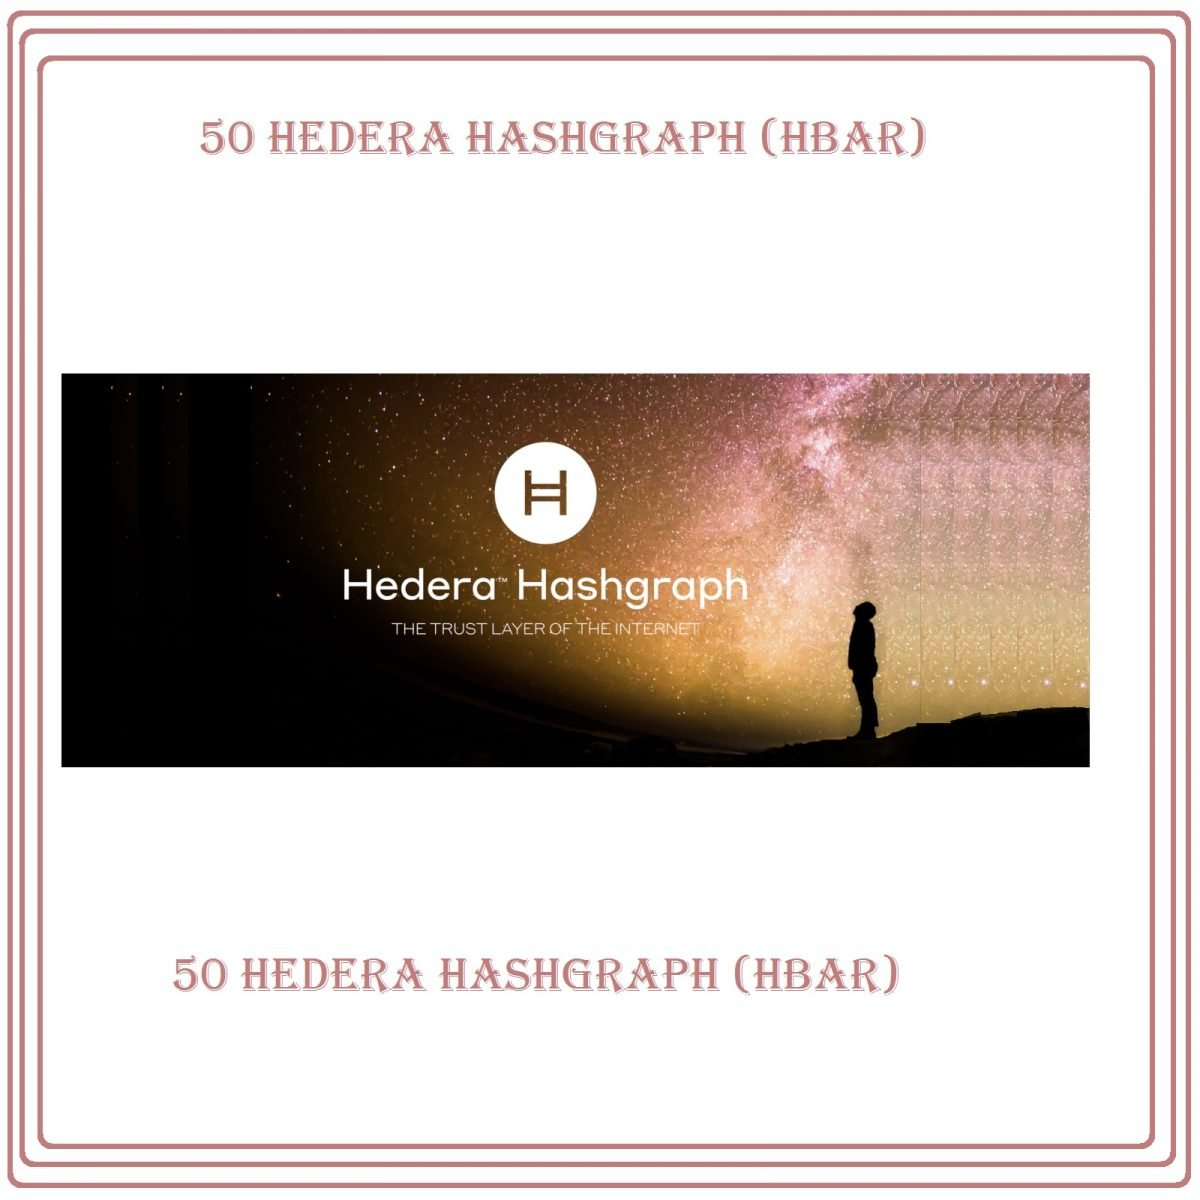 50 Hedera Hashgraph Ledger Technology